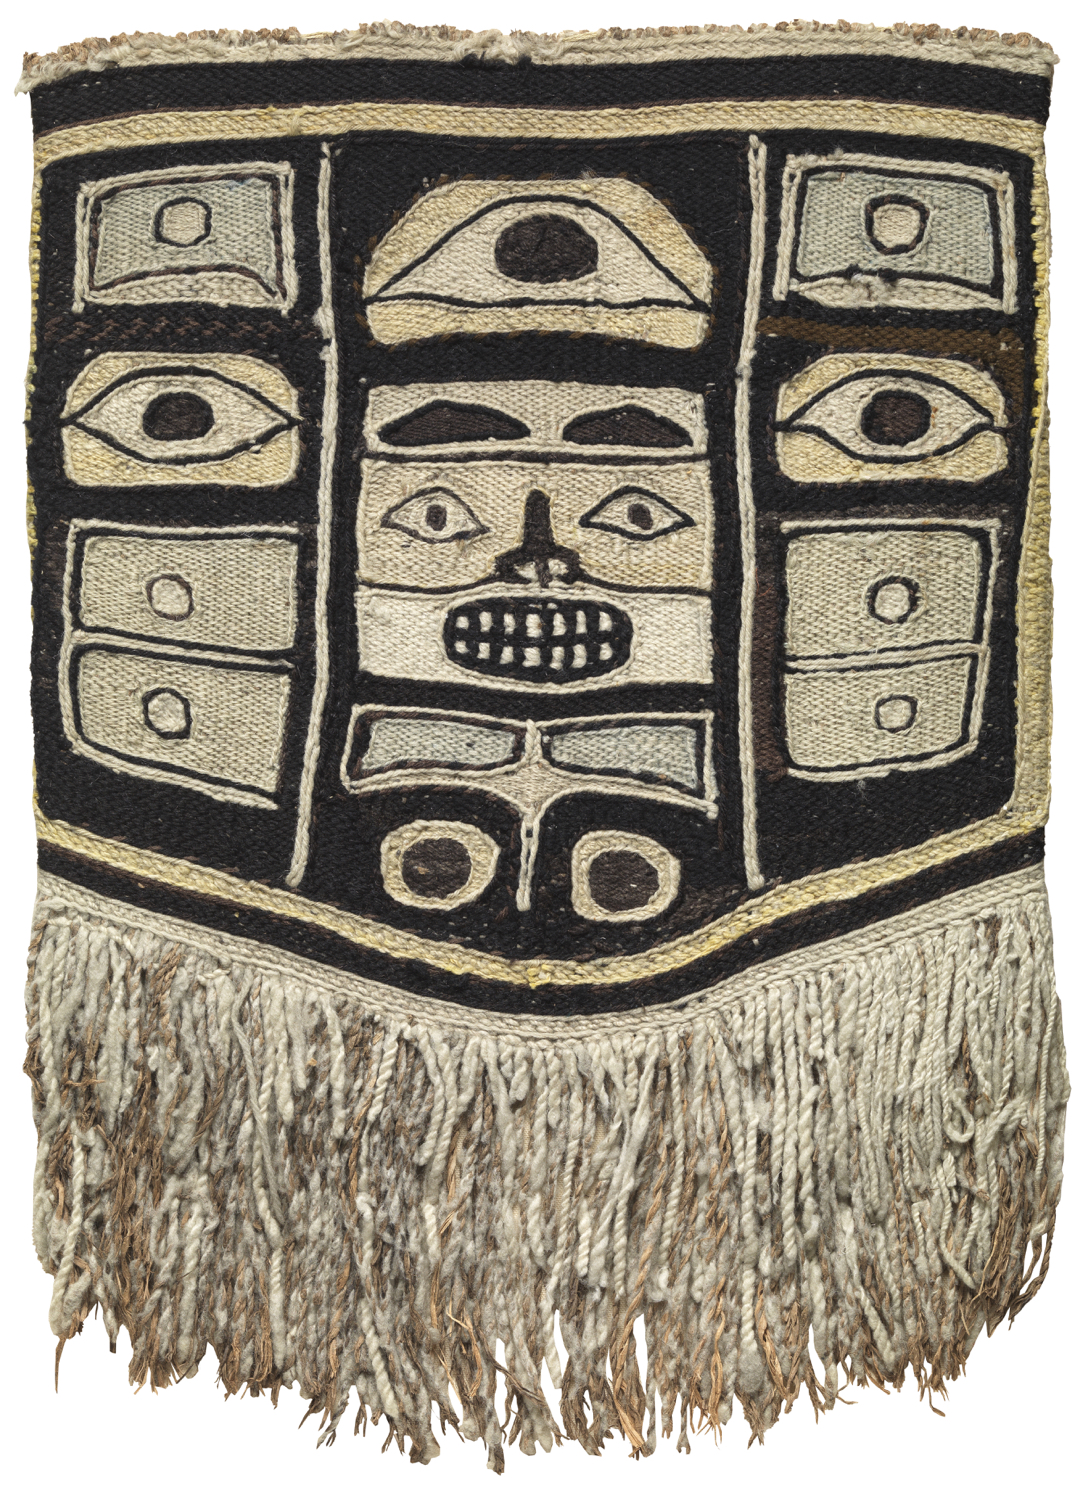 Miniature fringed blanket with geometric motifs